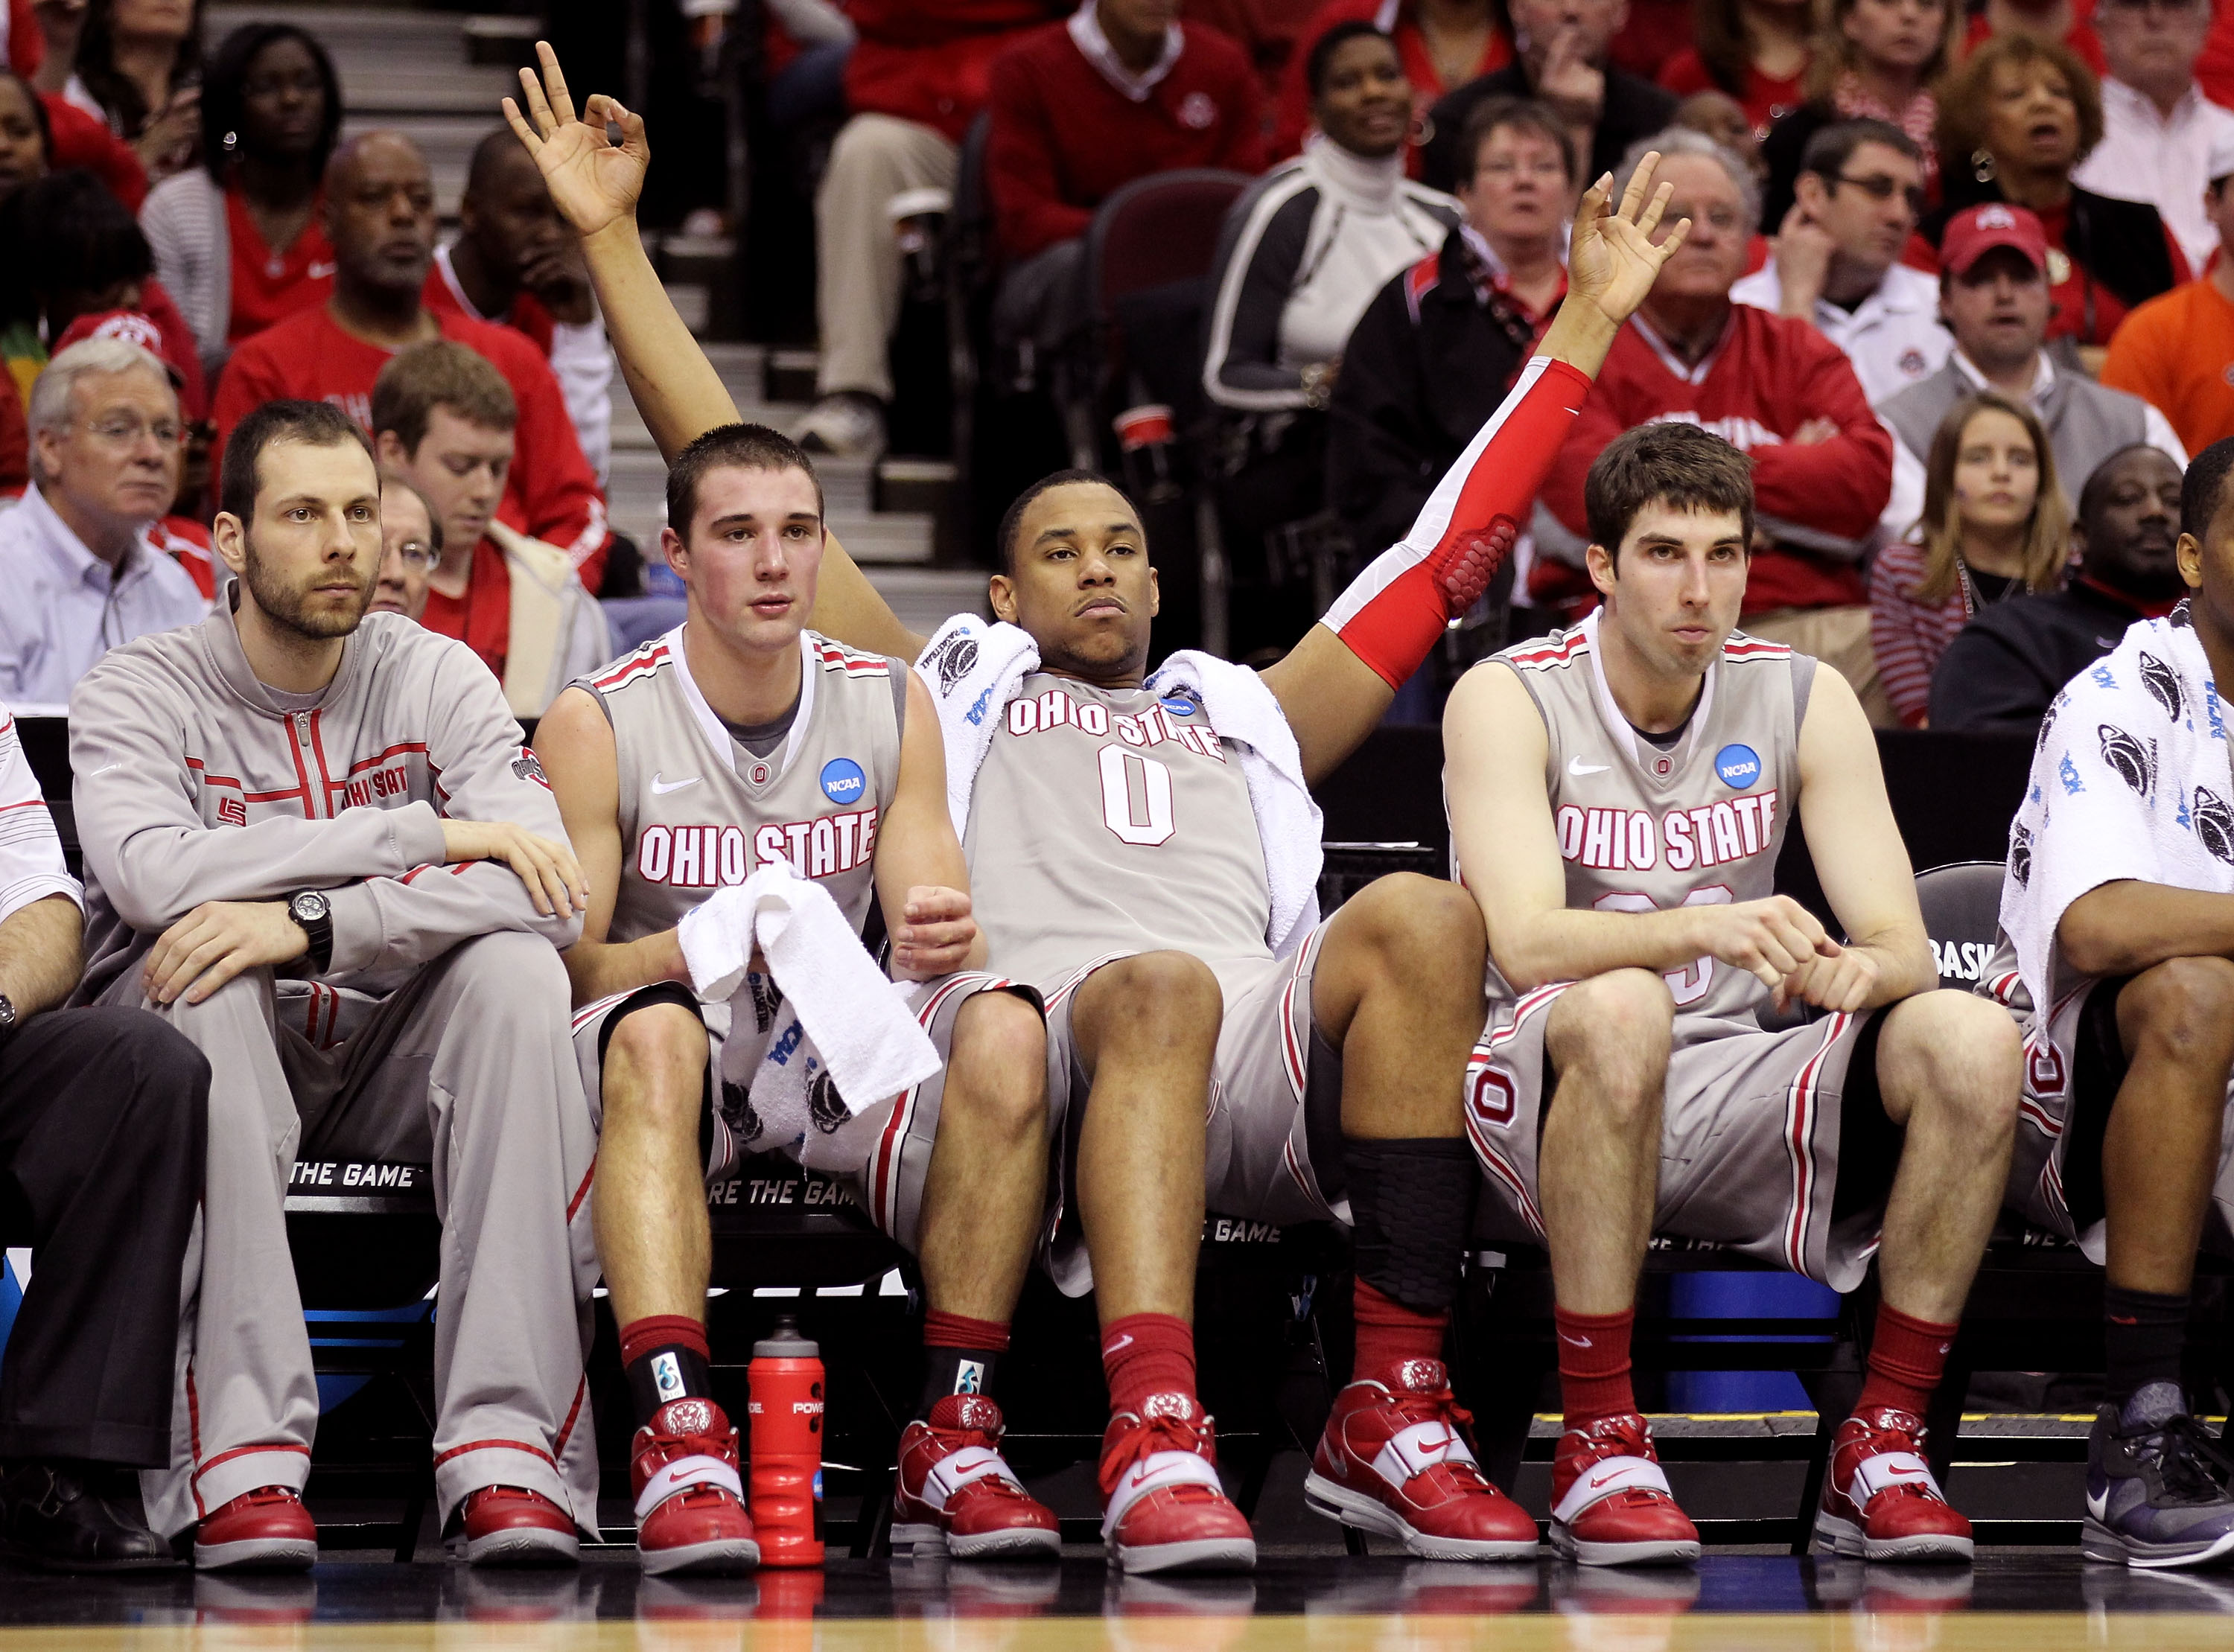 CLEVELAND, OH - MARCH 20: Aaron Craft #4, Jared Sullinger #0 and Jon Diebler #33 of the Ohio State Buckeyes look on from the bench late in the second half against the George Mason Patriots during the third of the 2011 NCAA men's basketball tournament at Q